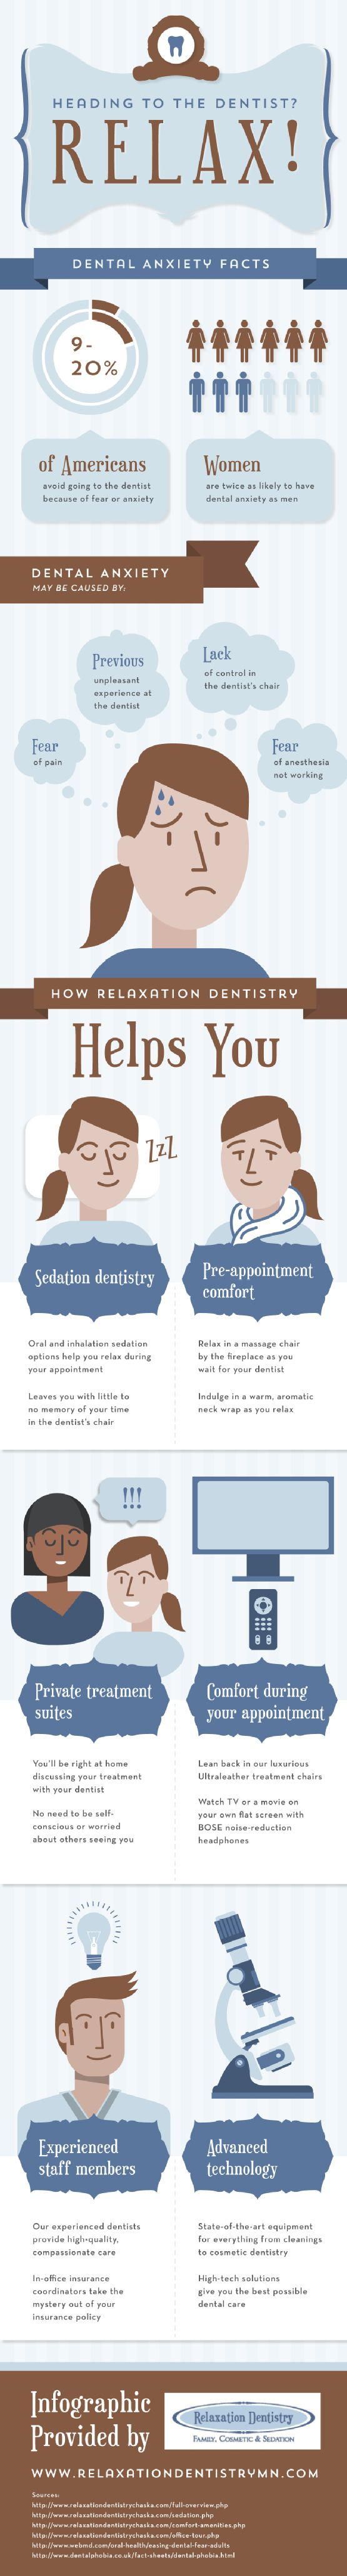 Sedation dentistry leaves patients with little to no memory of their time in the dentist's chair. This option is great for patients who suffer from dental phobia before their appointments. Take a look at this Chaska dental anxiety infographic for more facts.